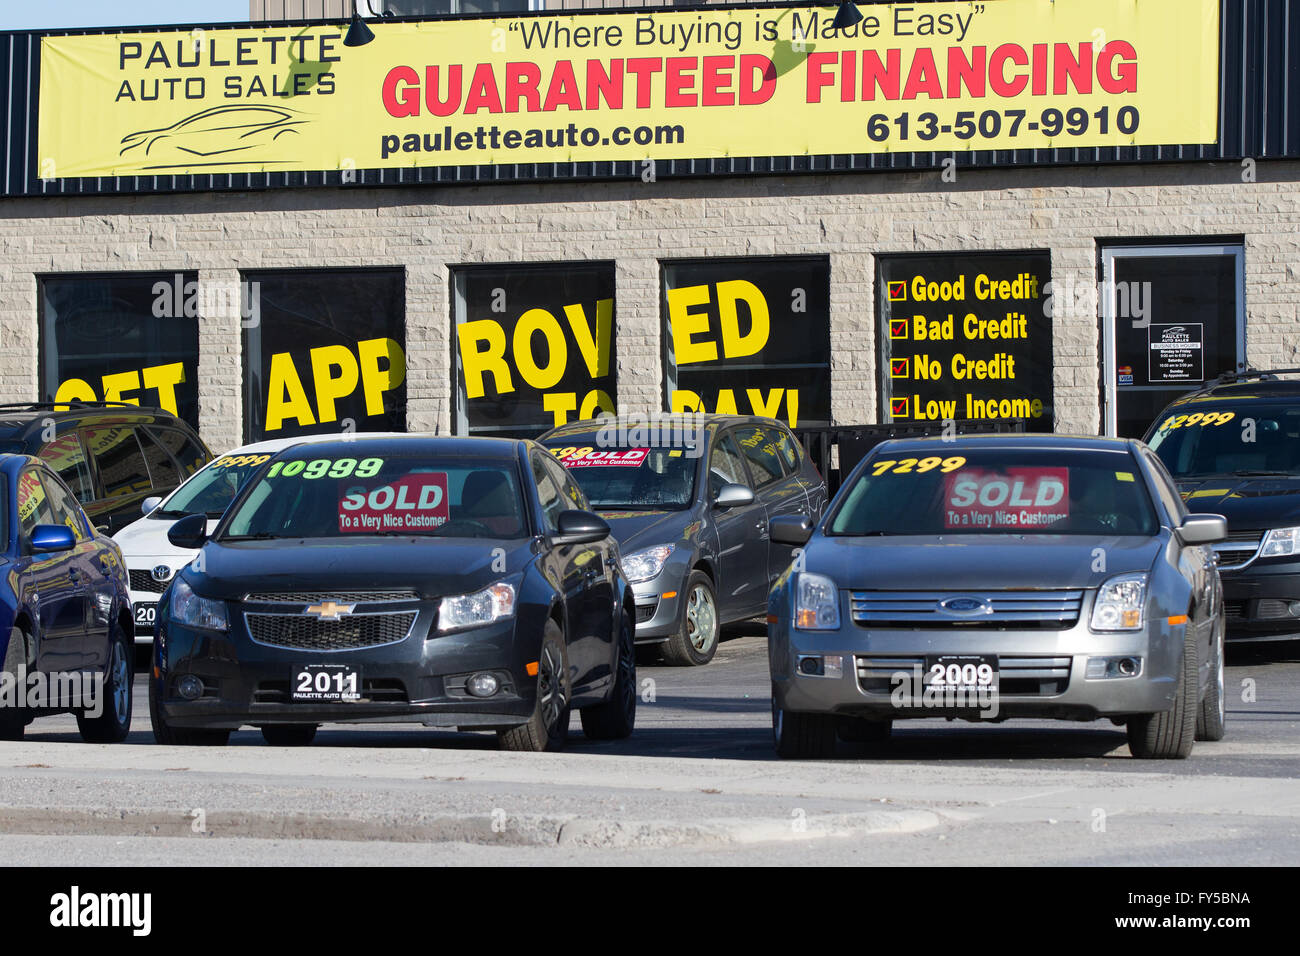 Used Cars Dealership >> Several Used Cars For Sale At A Car Dealership In Kingston